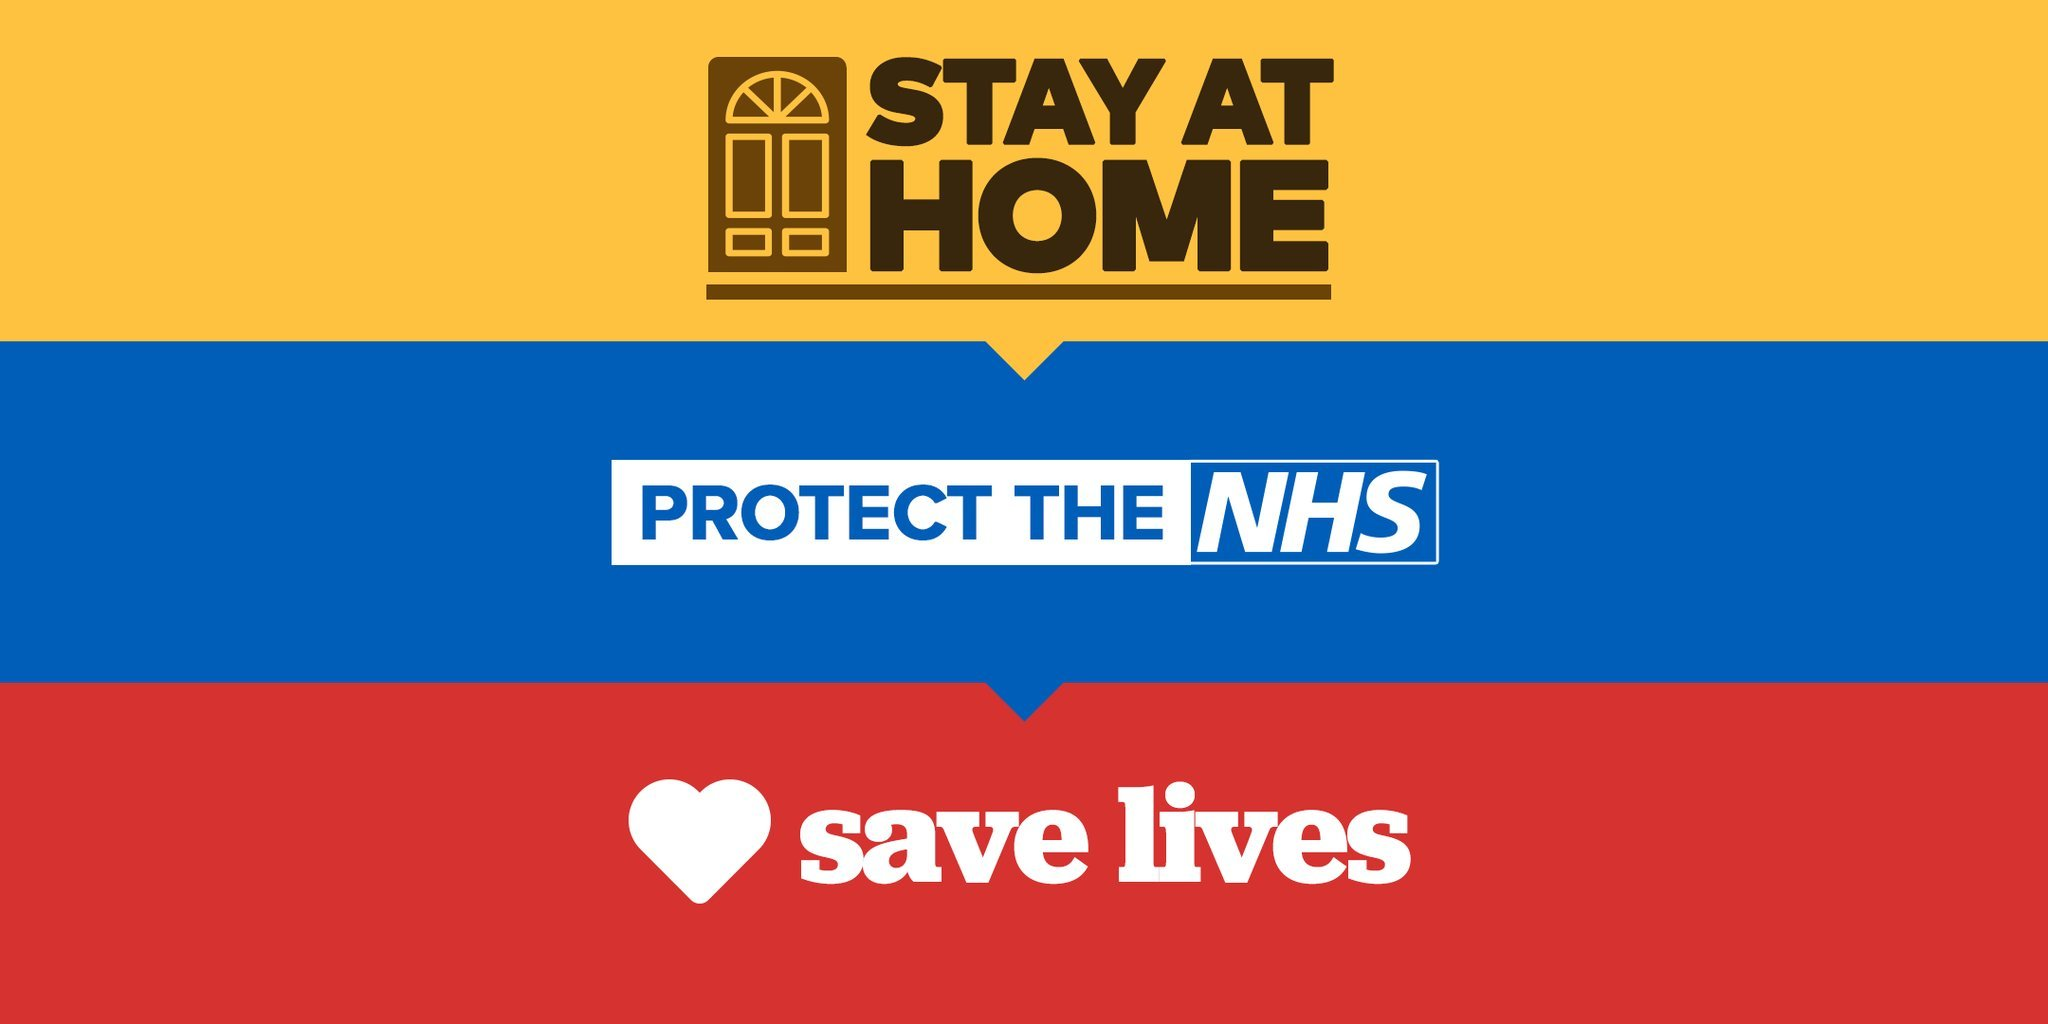 Echo comment: Stay strong and try to stay safe | The Northern Echo